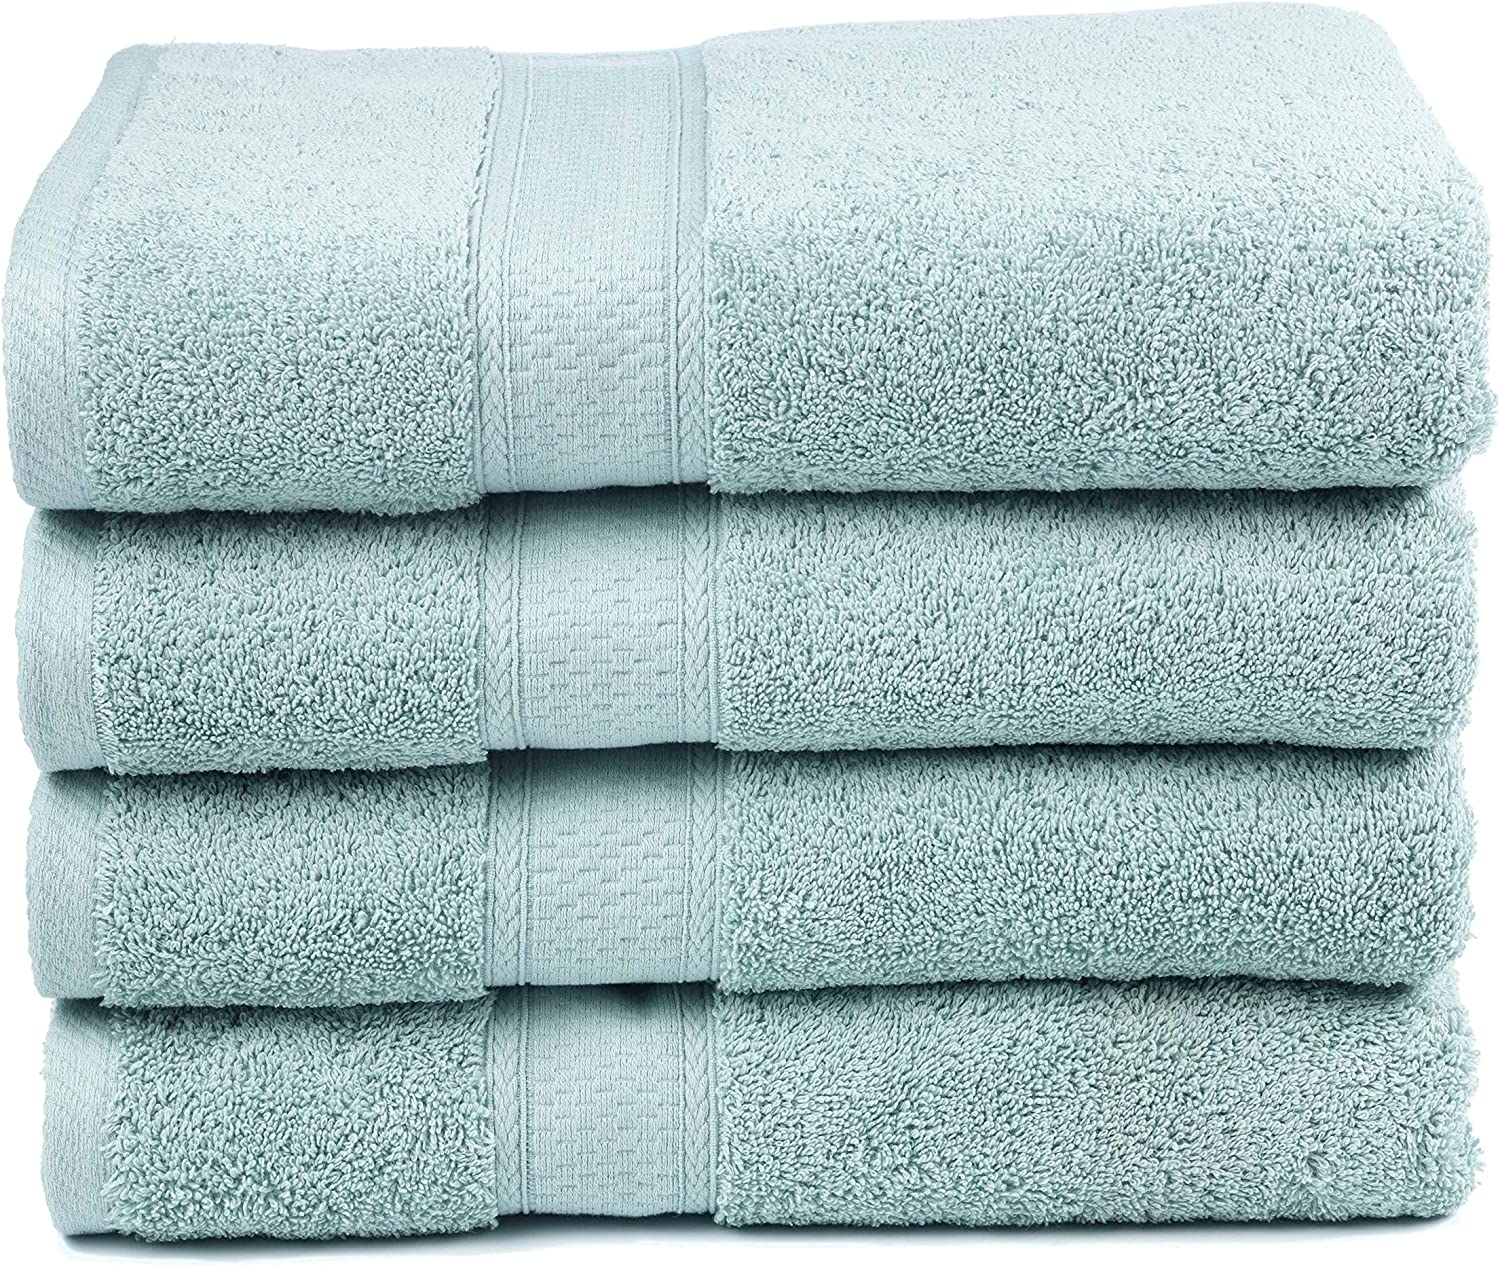 Pure cotton clean towels towels 16 color NEW 100/% cotton bamboo fiber